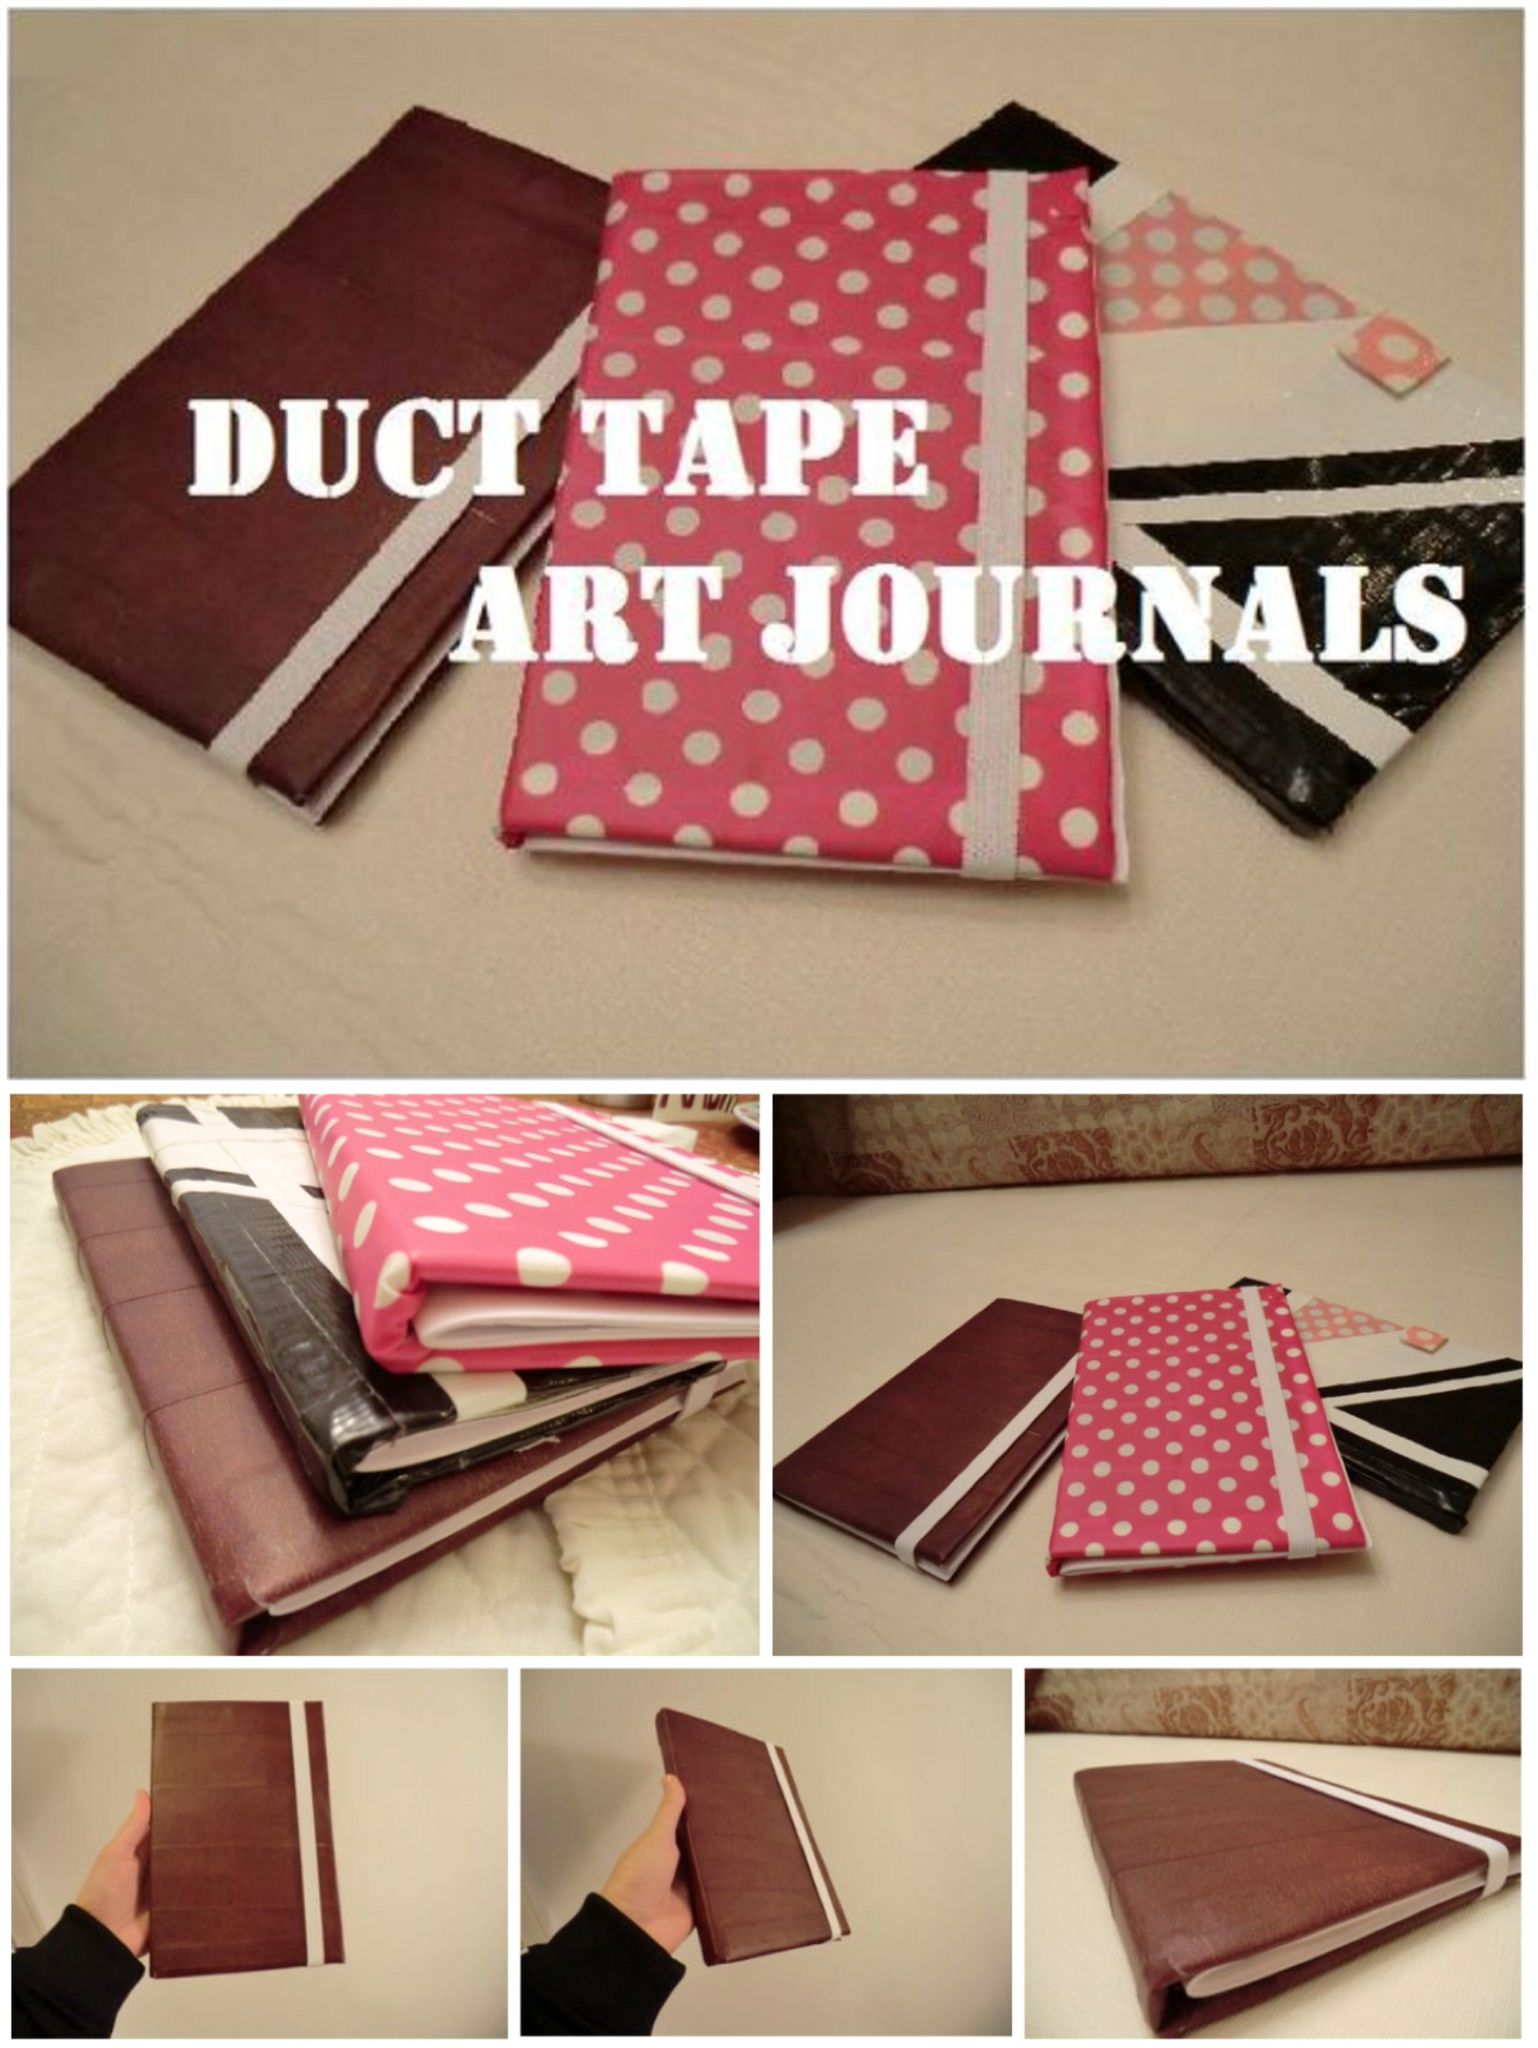 'Duct Tape Art Journal...!' (via Instructables.com)